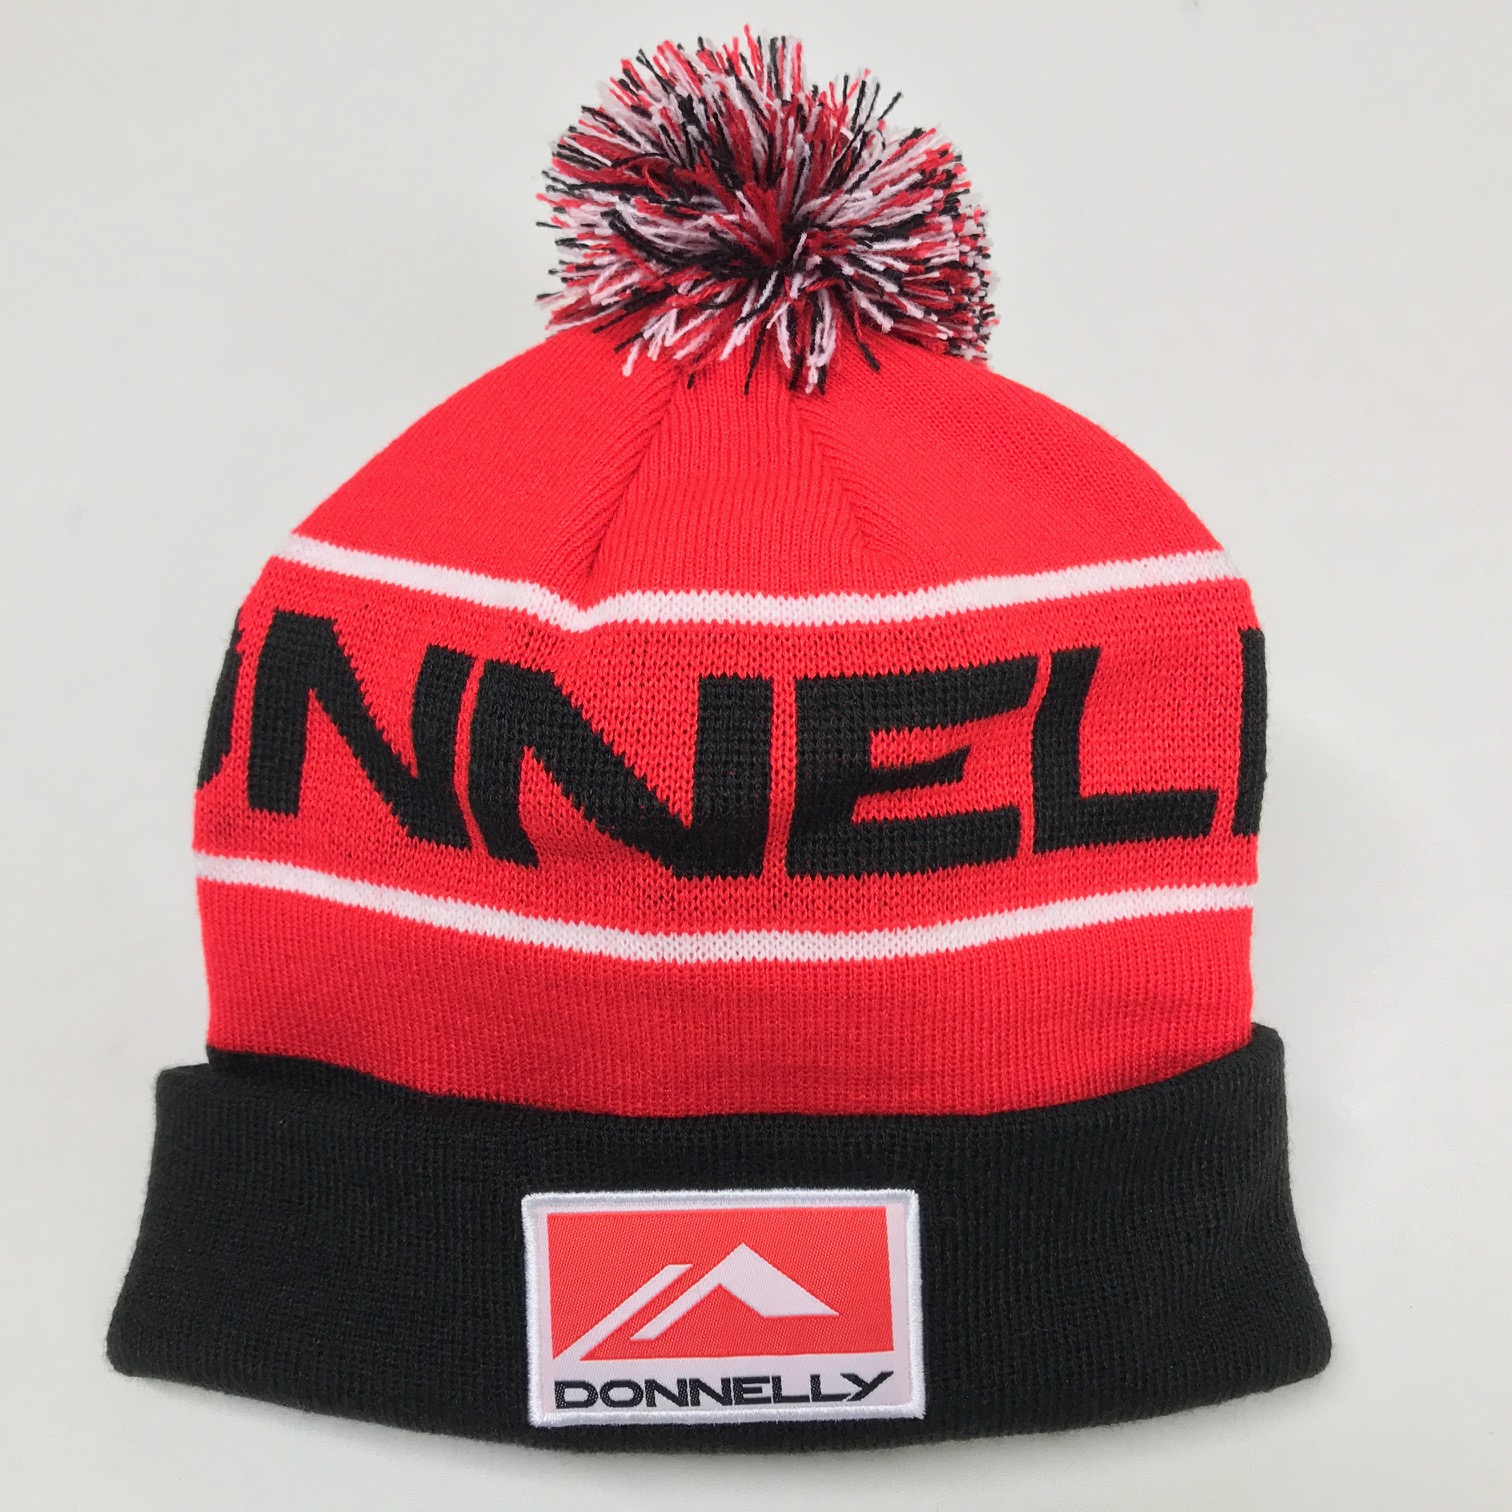 Donnelly Cycling Beanie Hat, Red/Black